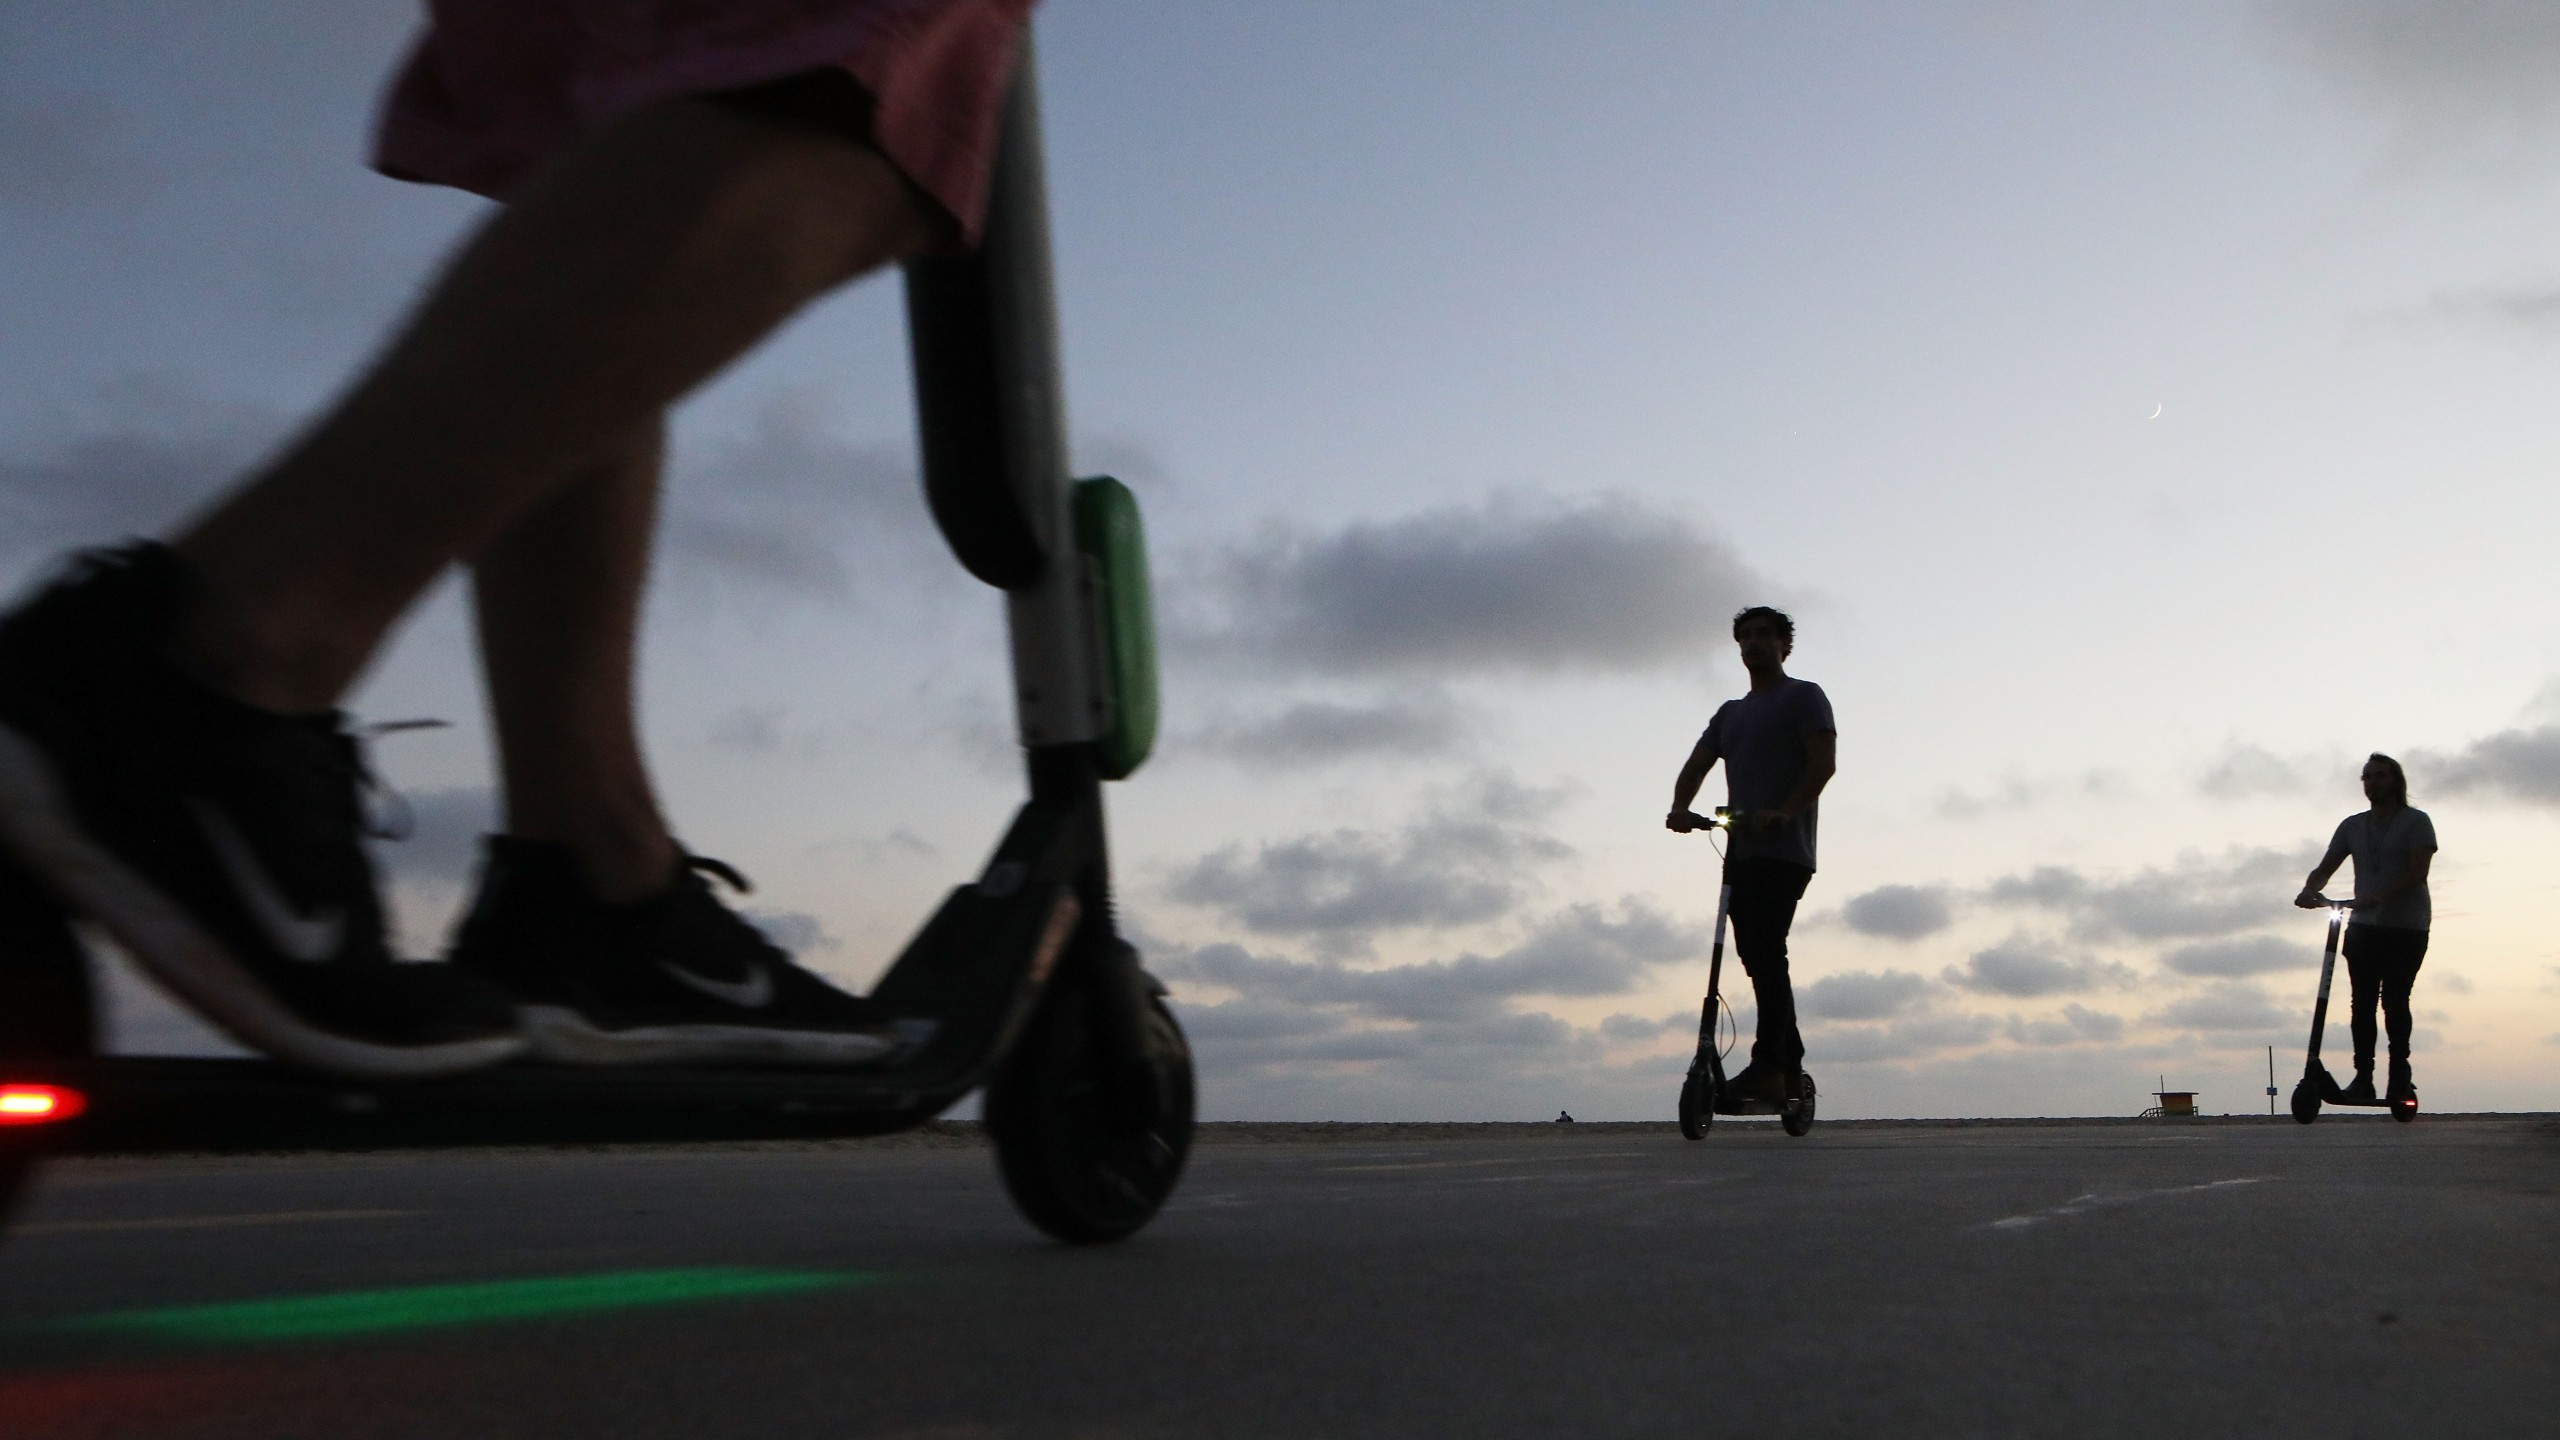 People ride shared dockless electric scooters along Venice Beach on Aug. 13, 2018. (Credit: Mario Tama/Getty Images)